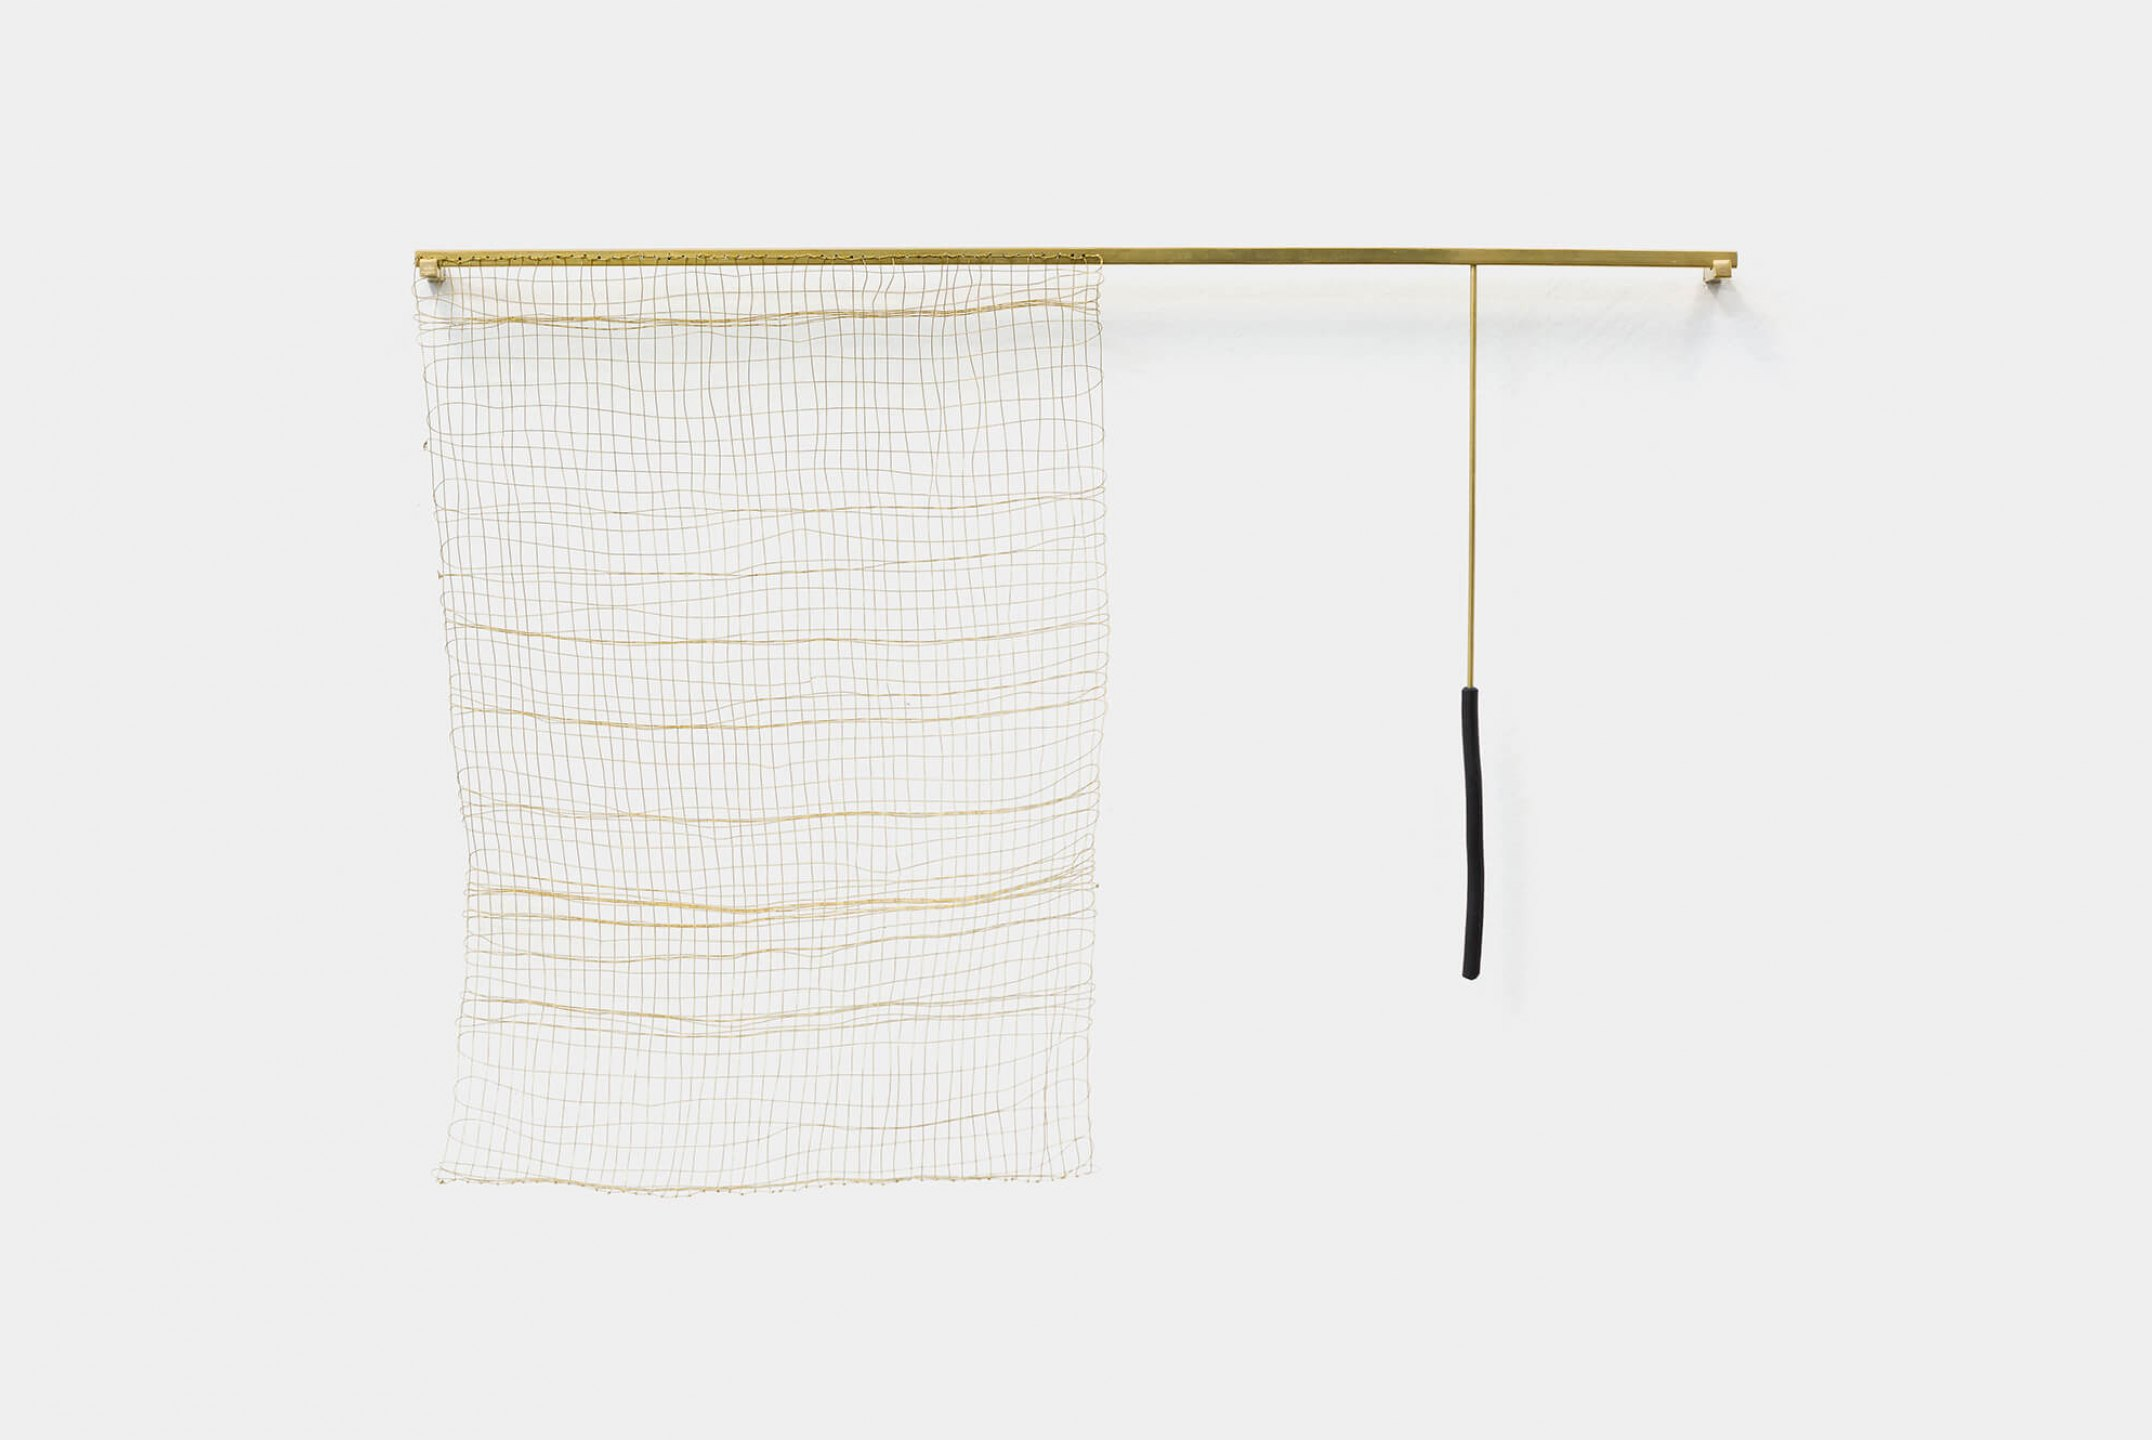 Paloma Bosquê, <em>Possible composition</em>, 2016, charcoal, fabric and brass rods, 34 × 47,5 × 3 cm - Mendes Wood DM